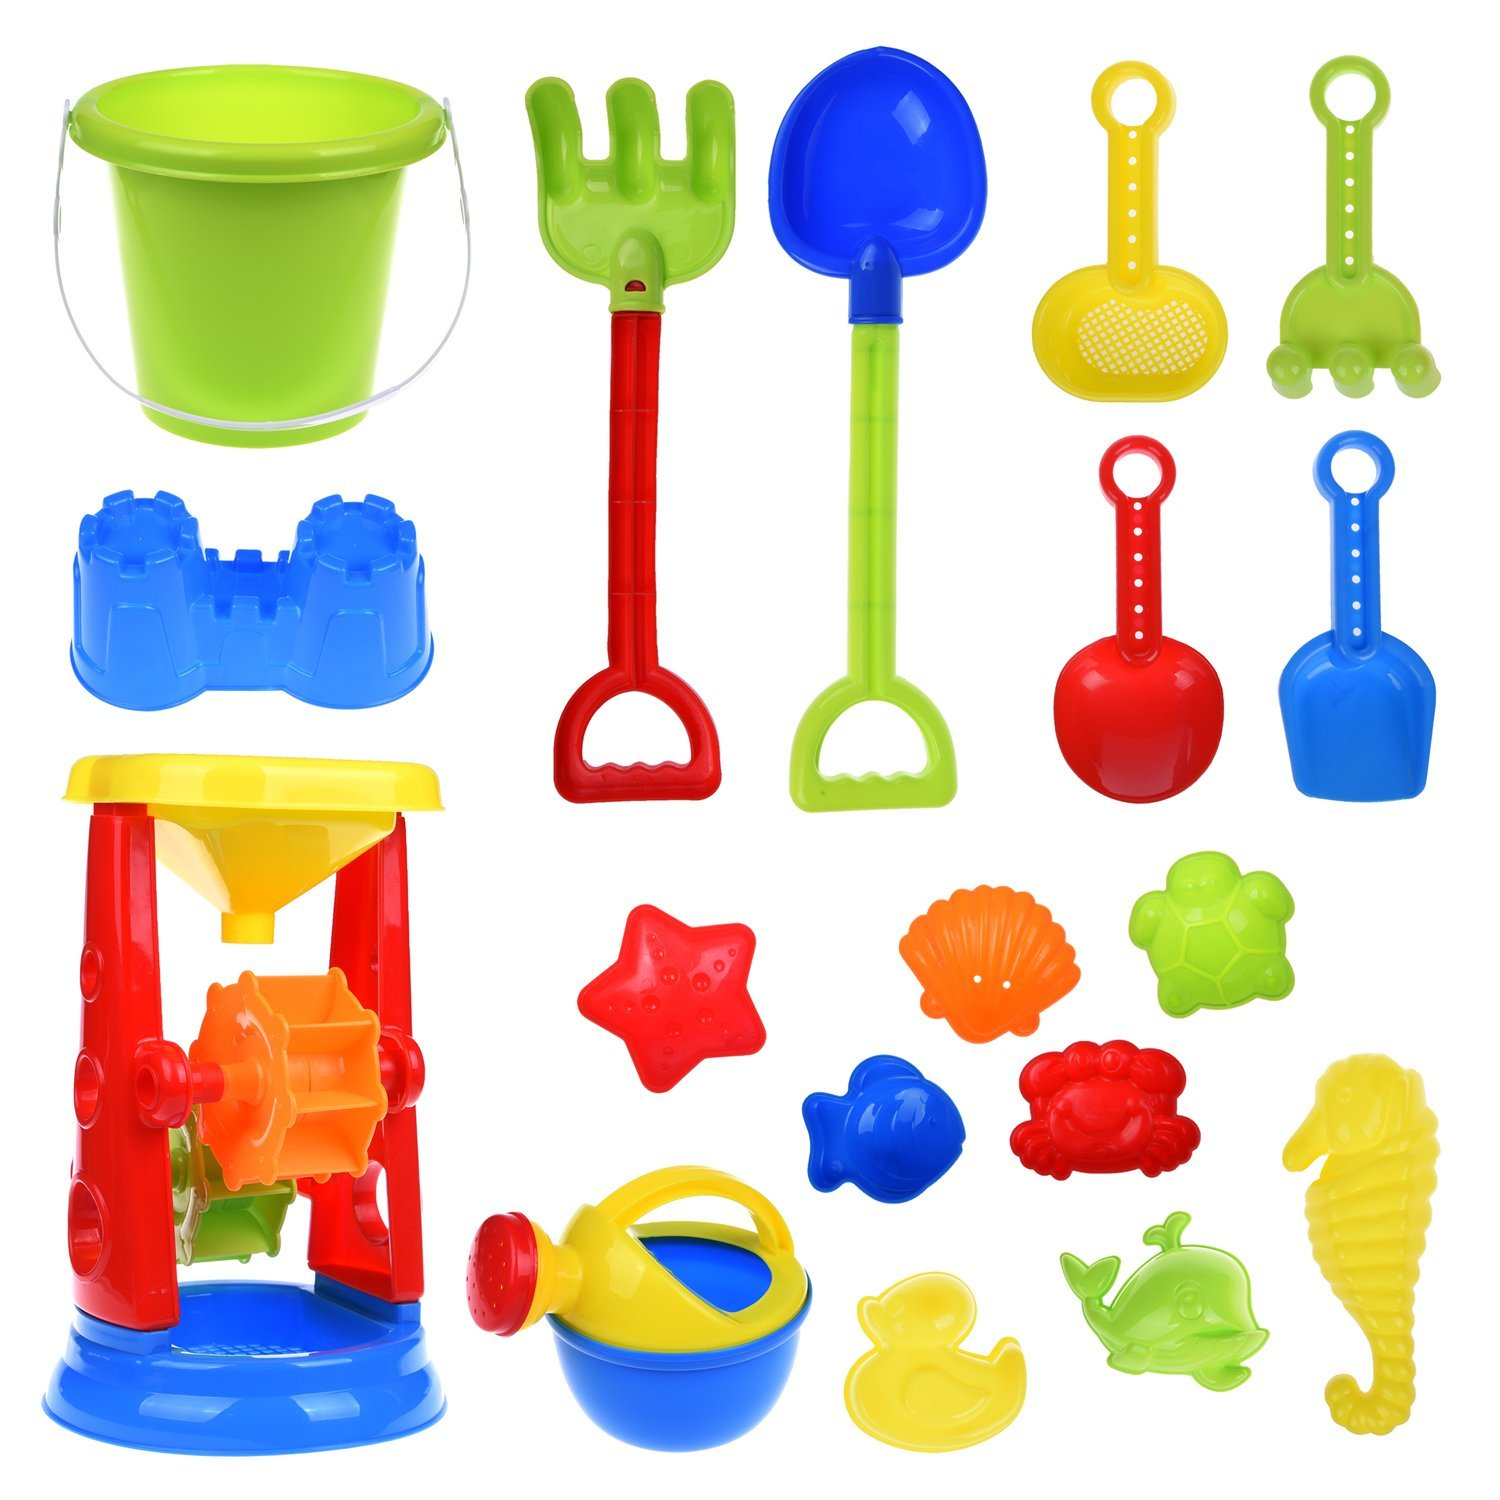 Kids Beach Sand Toys Set for Kid Gift Summer Toy with Sand Molds,Mesh Bag, Sand Wheel,Tool Play Set, Watering Can, Shovels, Rakes, Bucket ,Sea Creatures,Castle Molds 18 PCs F-129